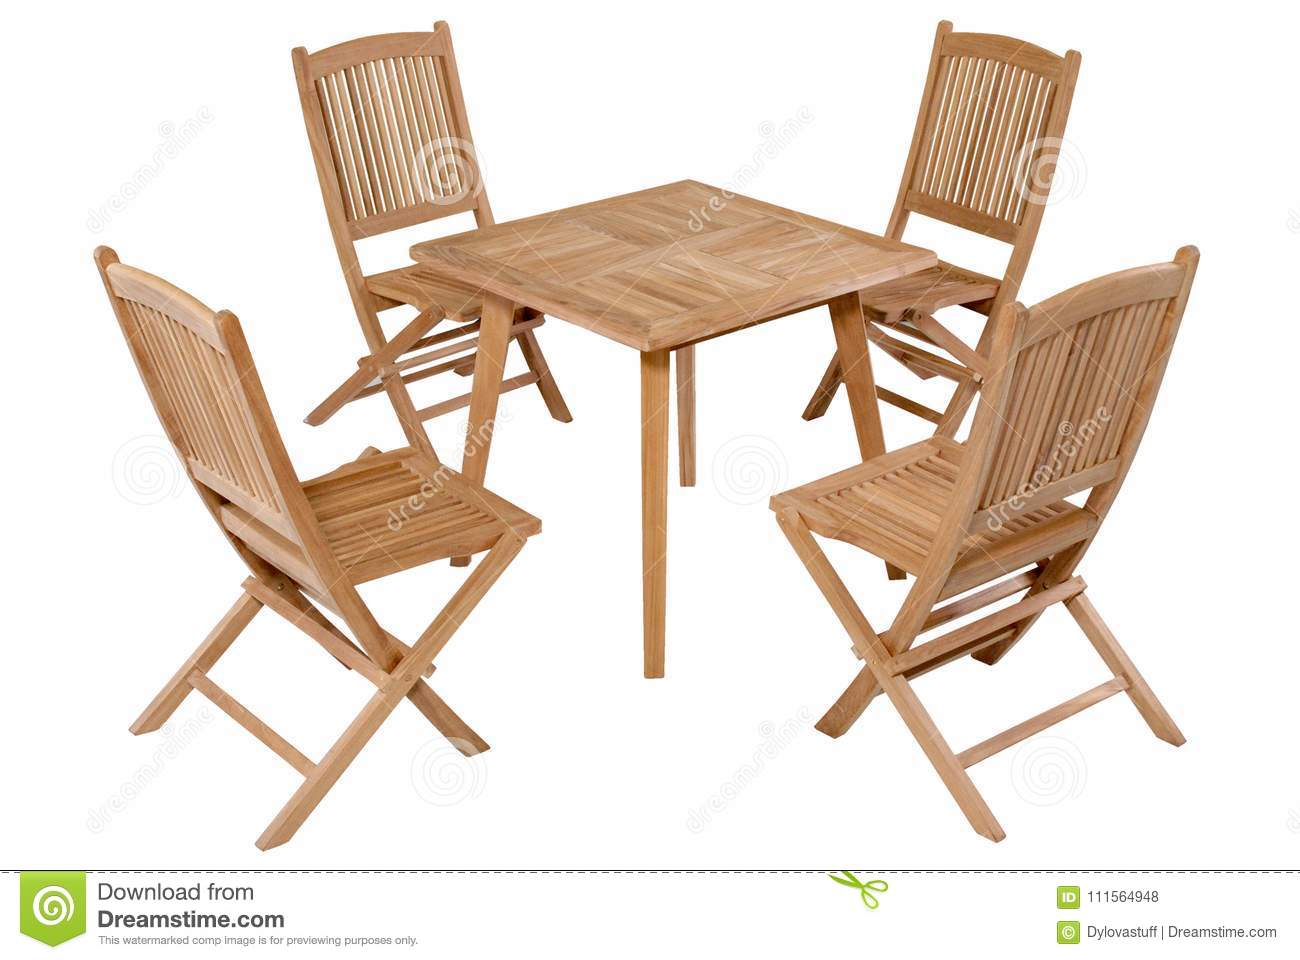 Picture of: Teak Folding Table Garden Furniture Garden Furniture Set Stock Photo Image Of Isolated Furniture 111564948